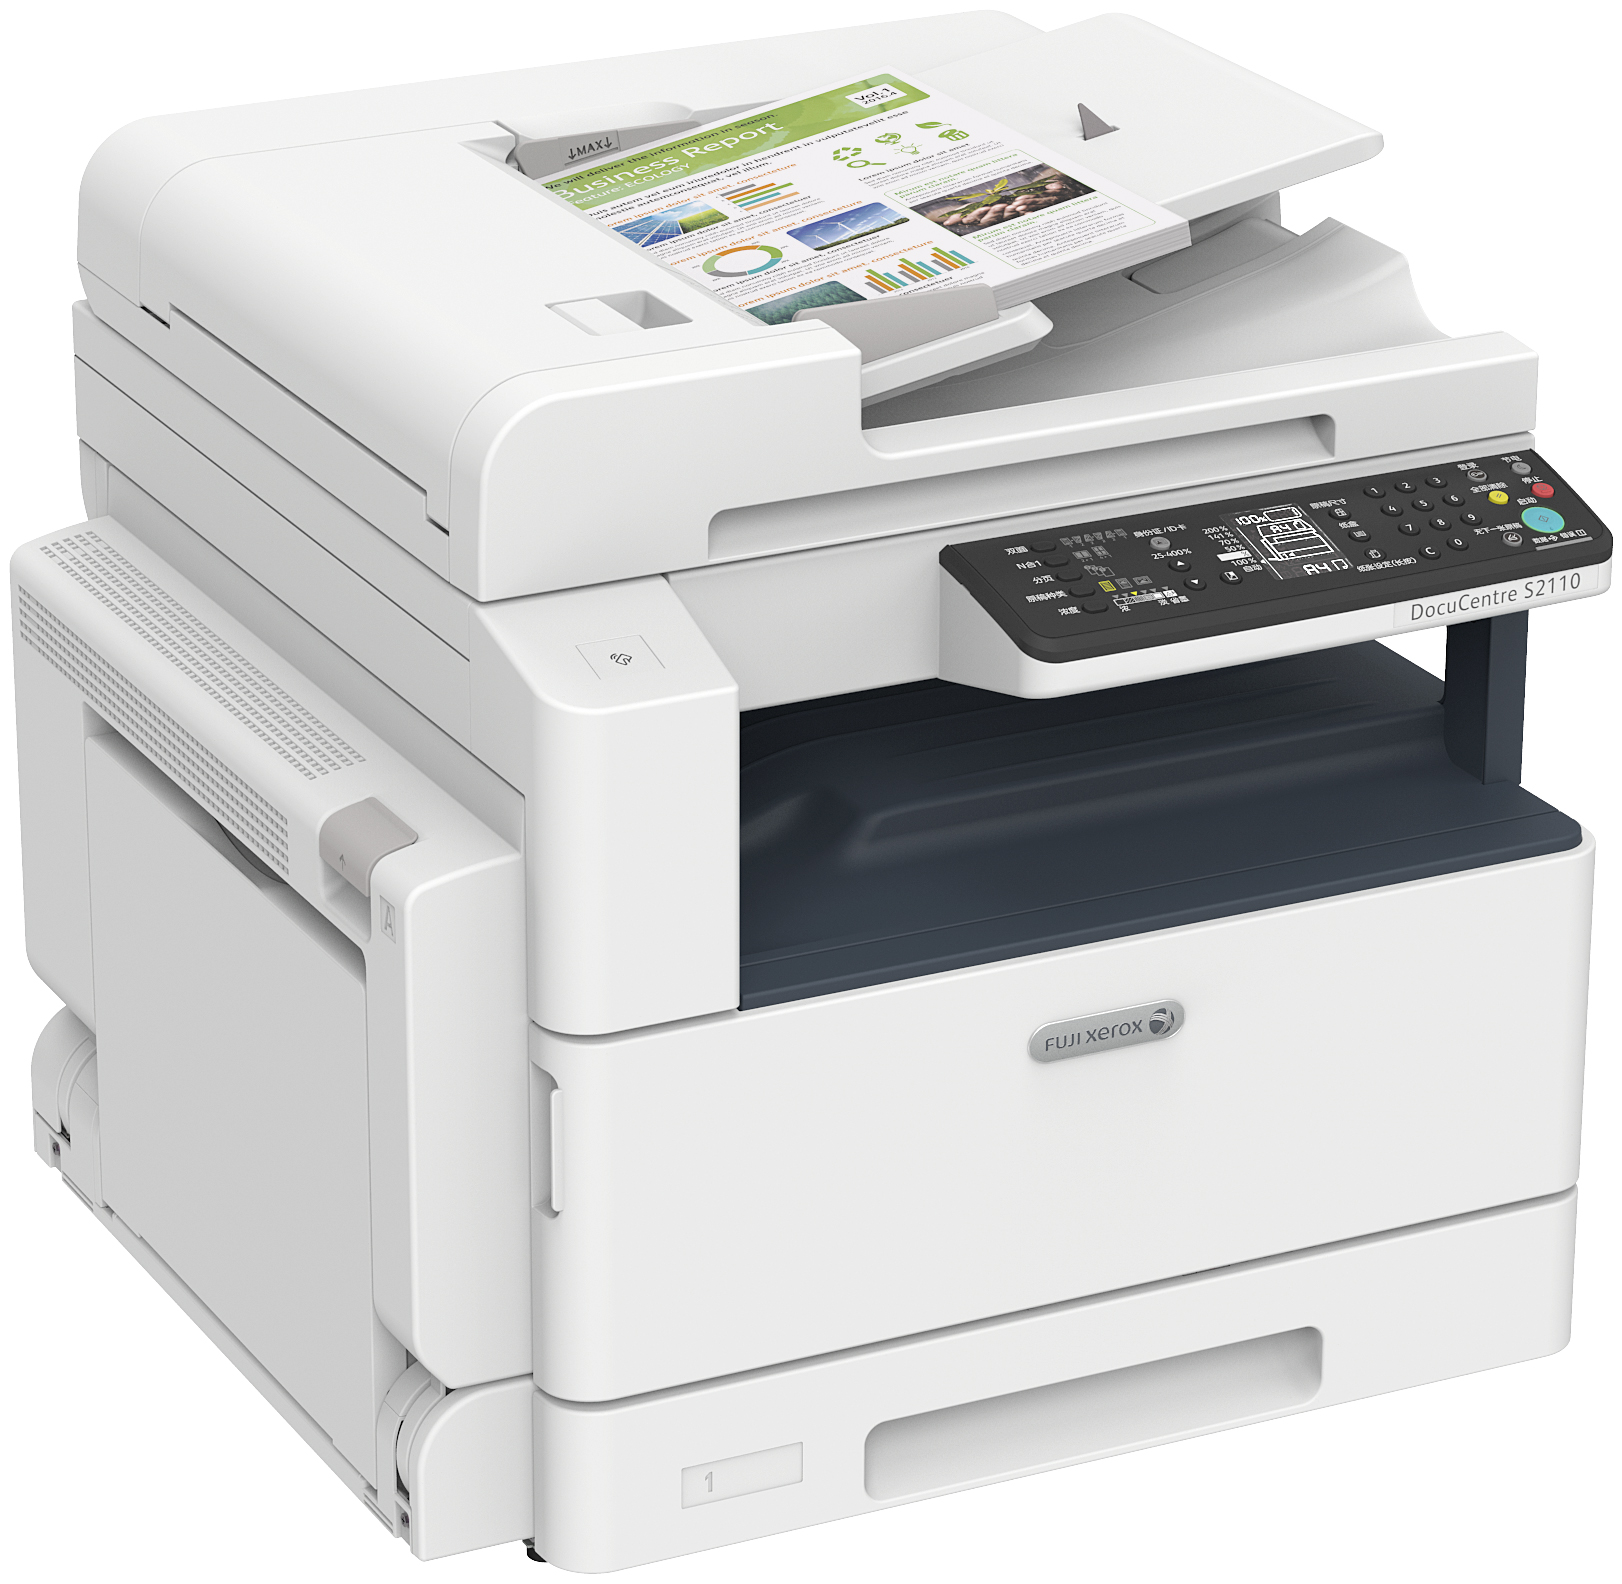 Fuji Xerox DocuCentre S2110 – Authorized dealer